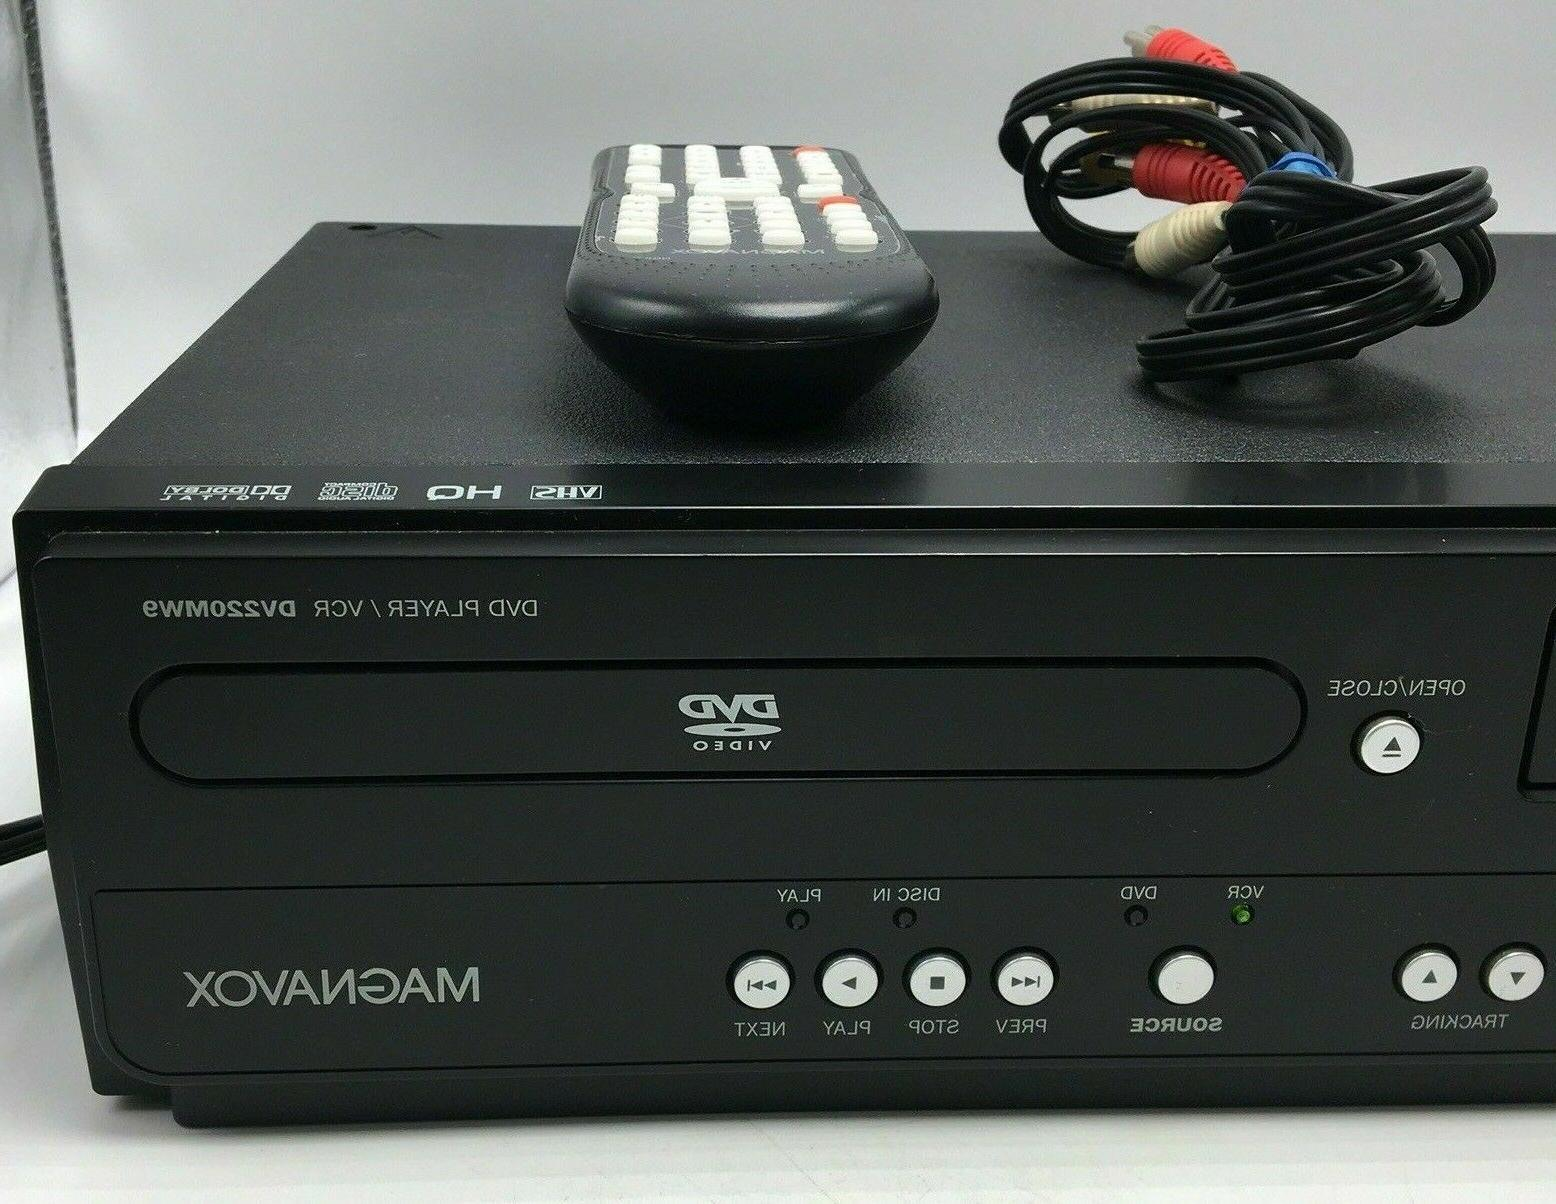 MINT! DVD/VCR COMBO VHS Recorder w/ Remote WORKS